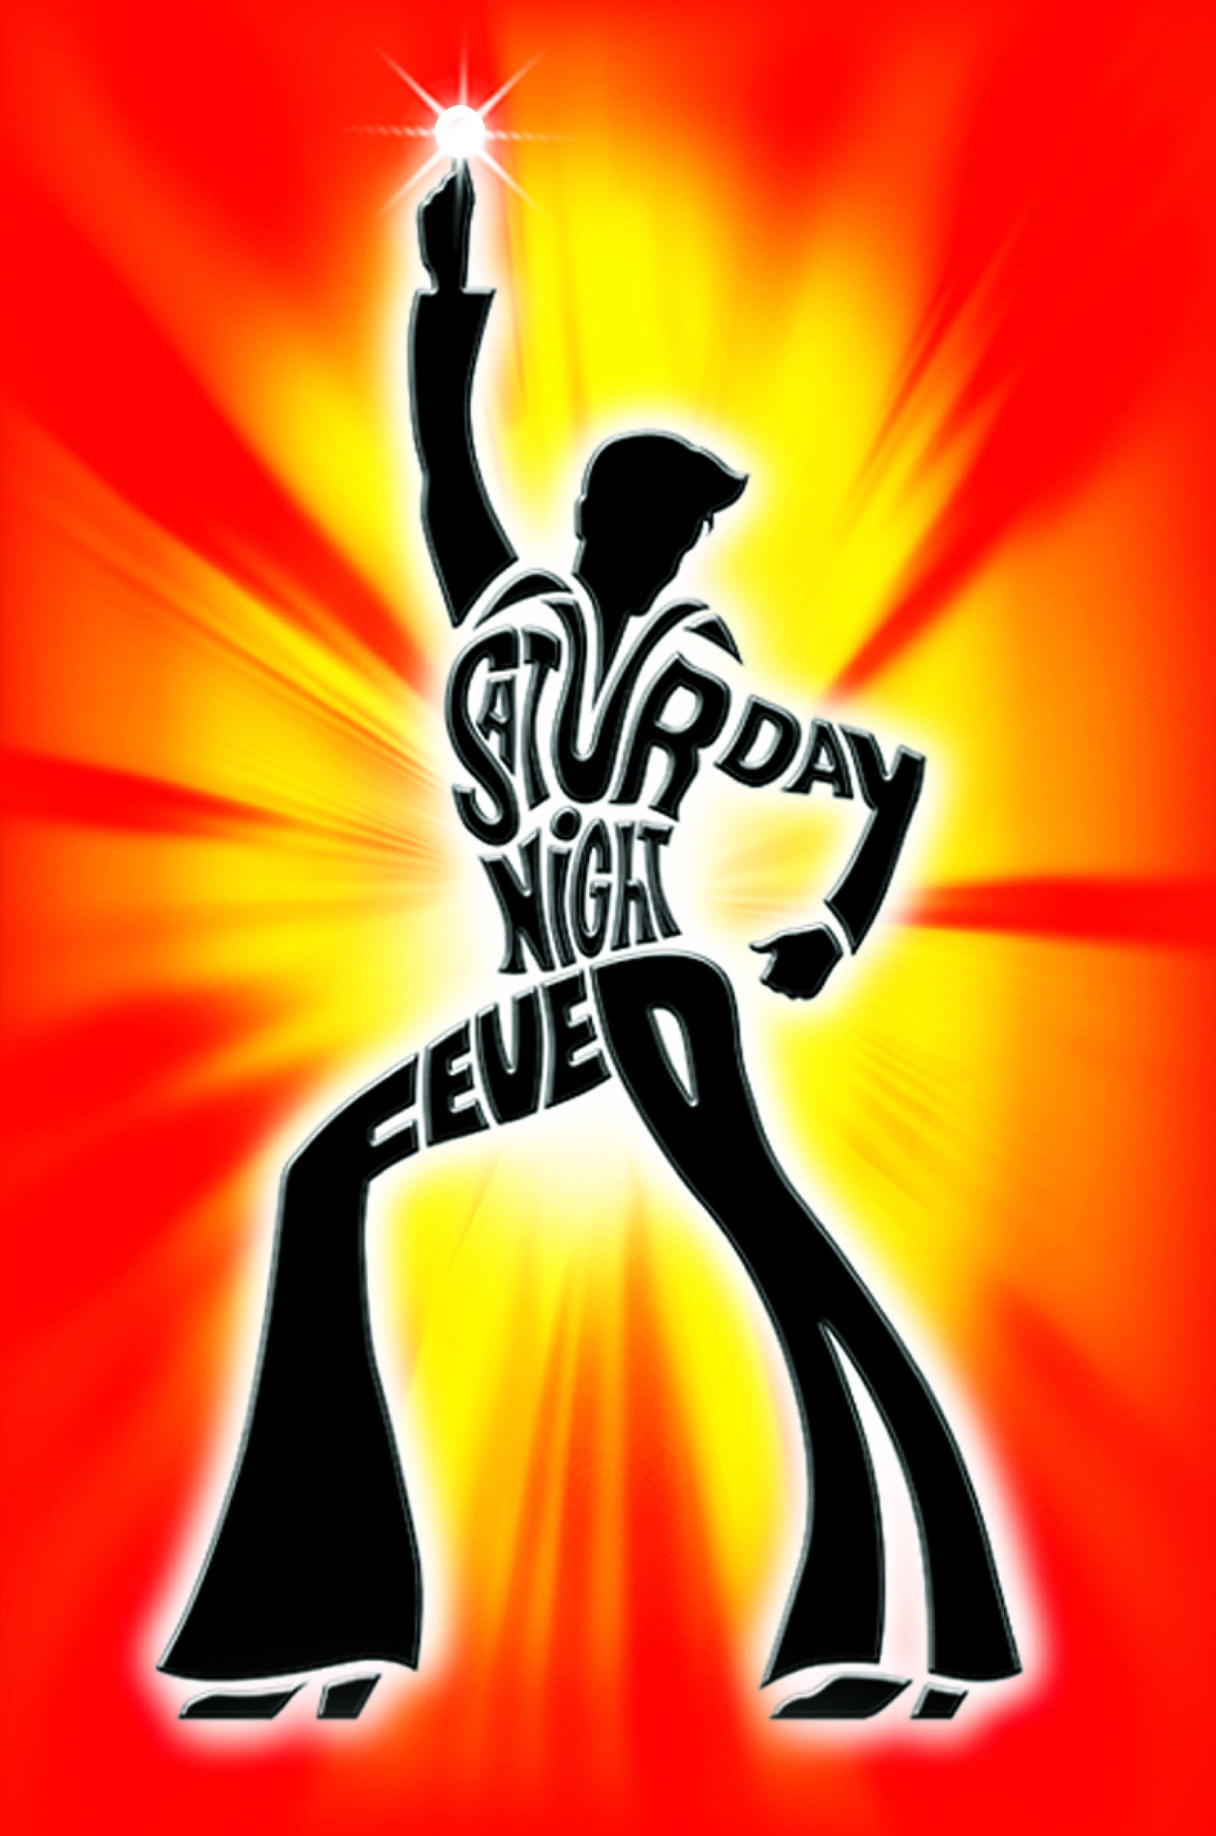 http://upload.wikimedia.org/wikipedia/ru/archive/d/d4/20090516202327!Saturday_night_fever.jpg